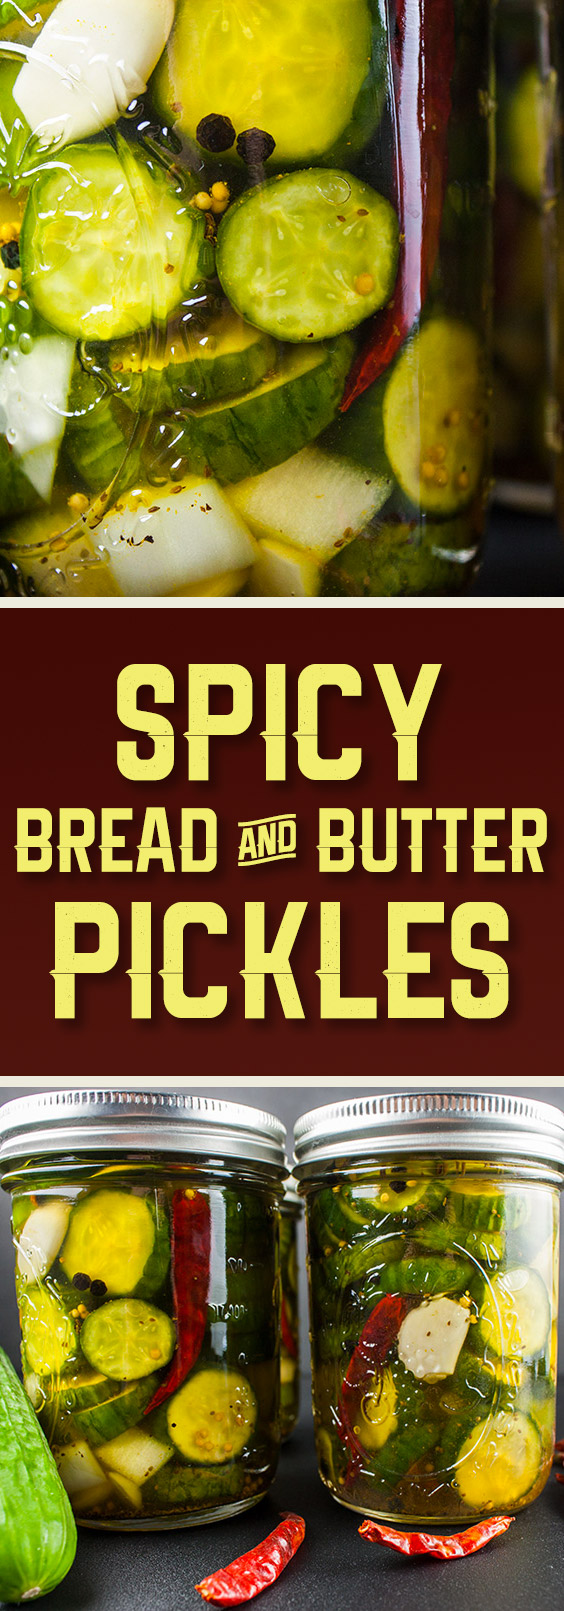 Spicy Bread and Butter Pickles - Spicy, sweet and extra crunchy! A Wickles Pickle copycat from scratch.